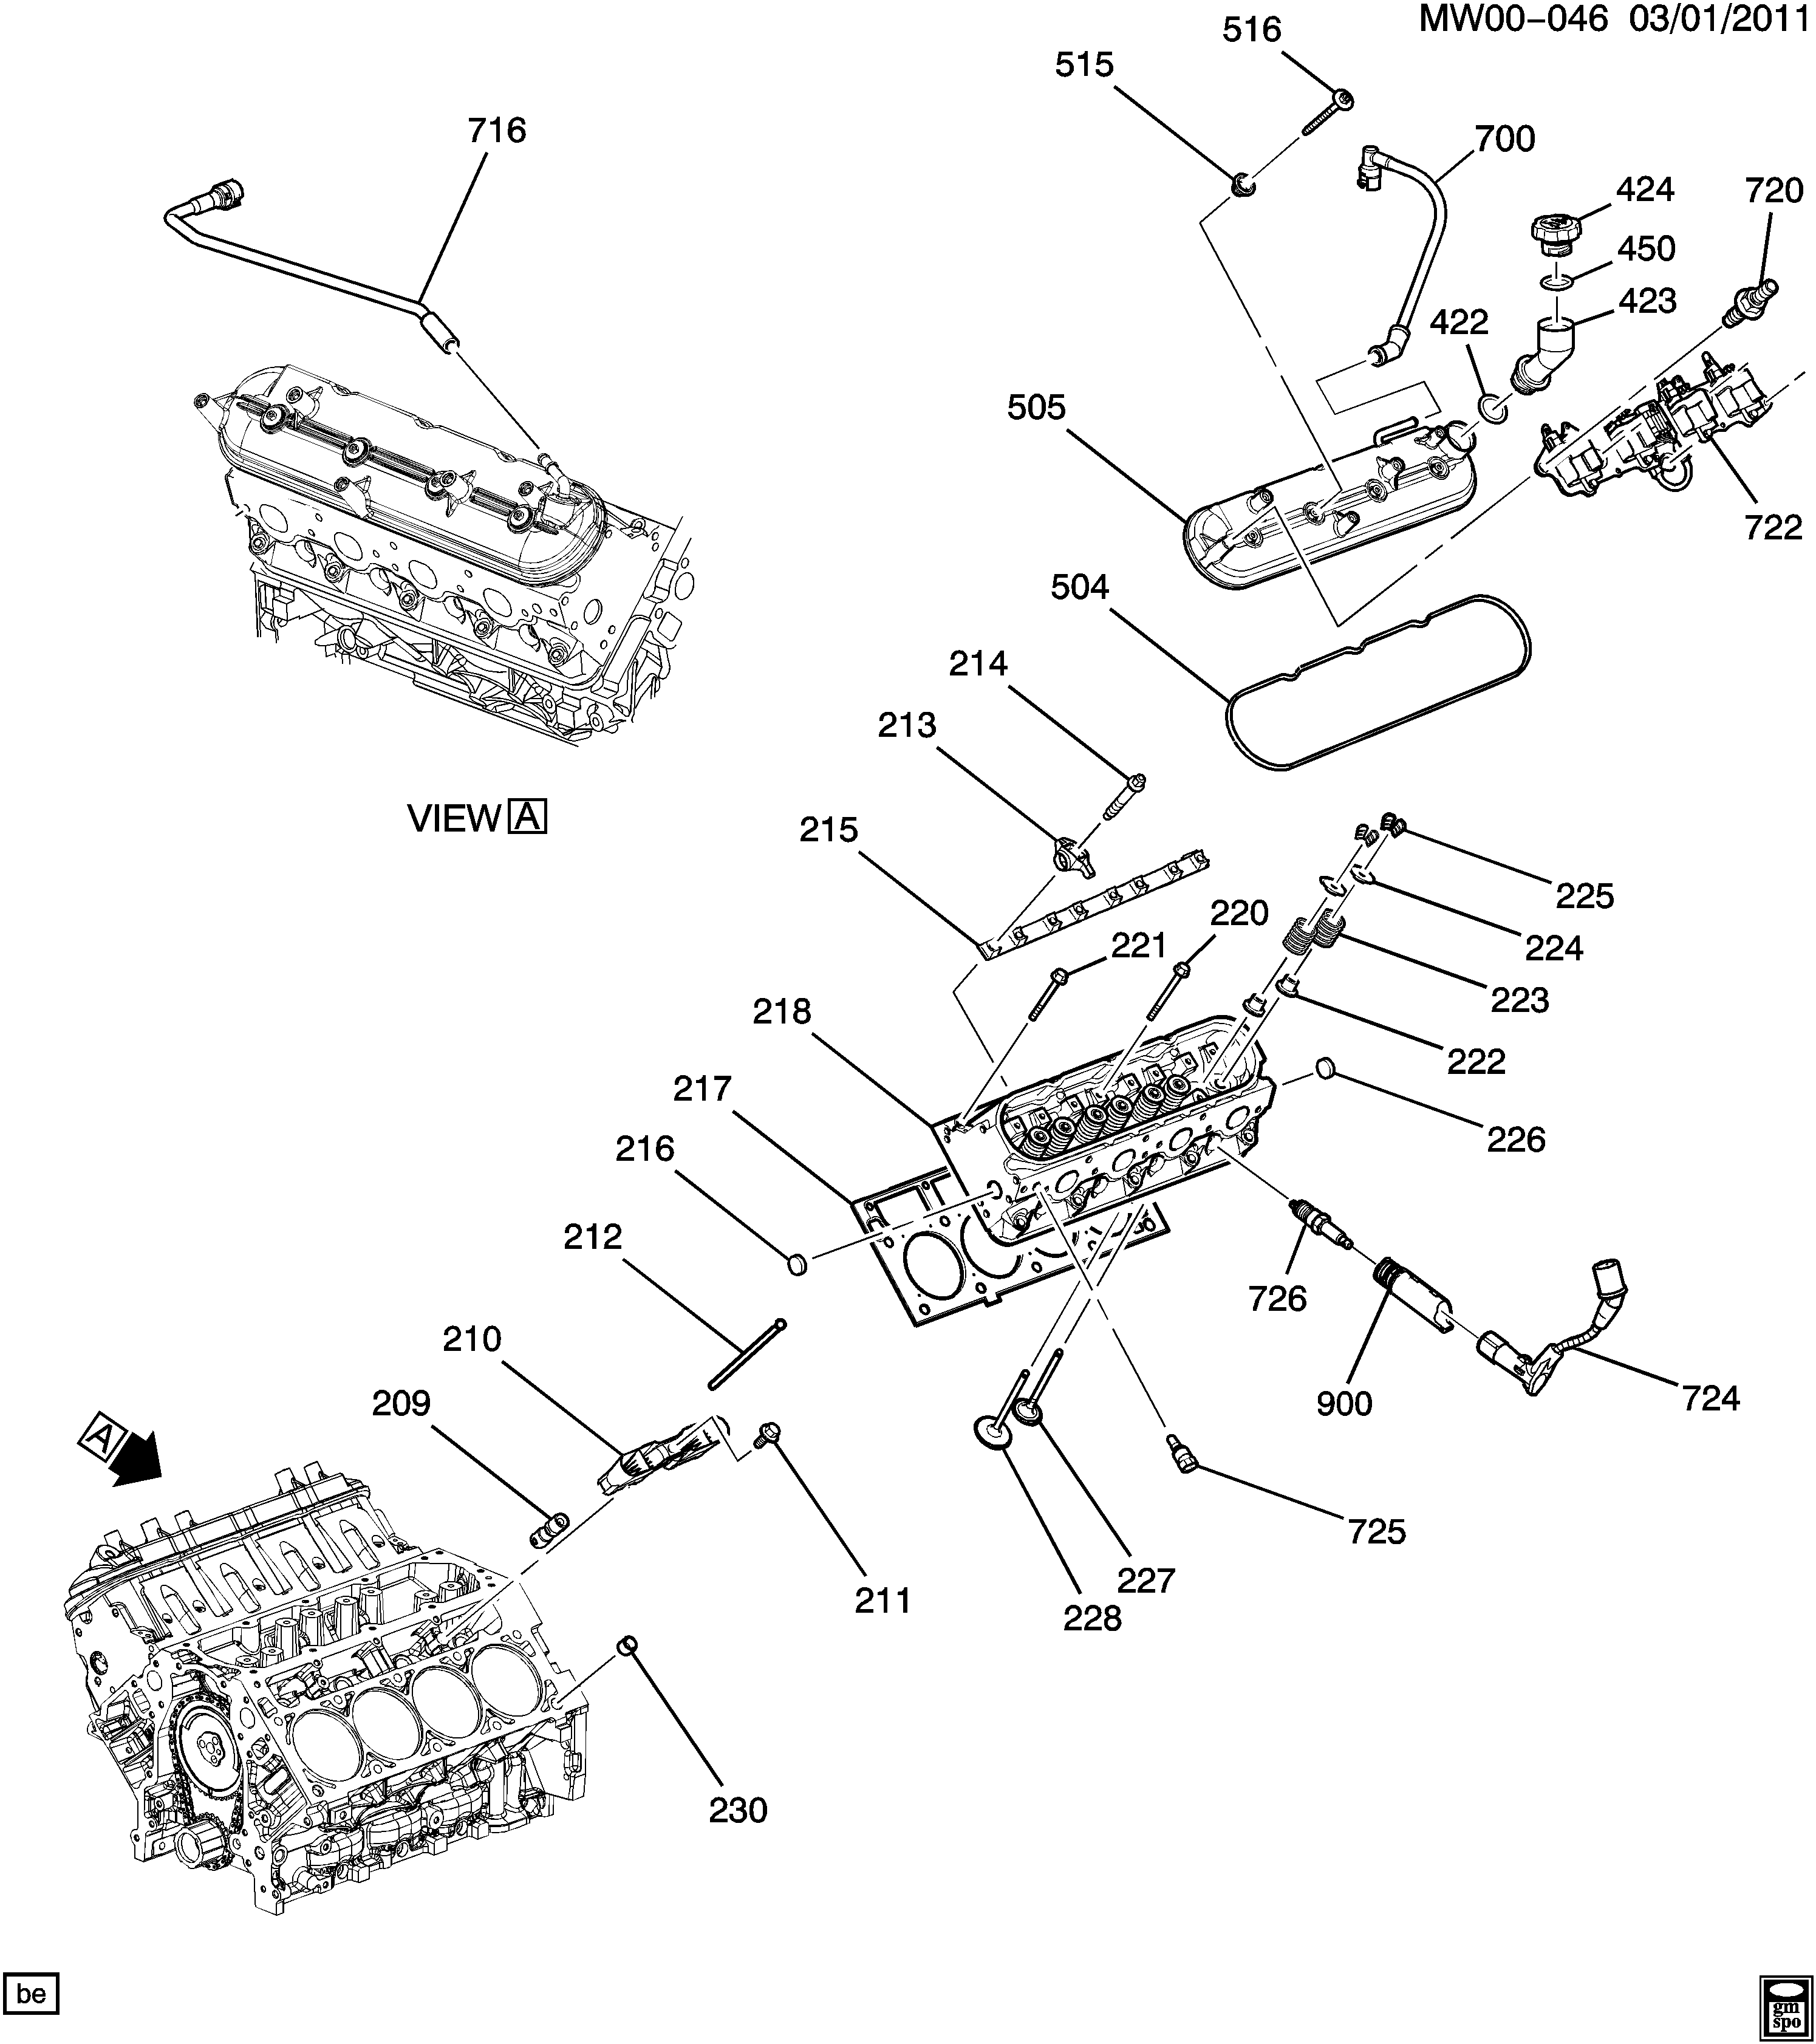 2006-2009 W ENGINE ASM-5.3L V8 PART 2 CYLINDER HEAD AND RELATED